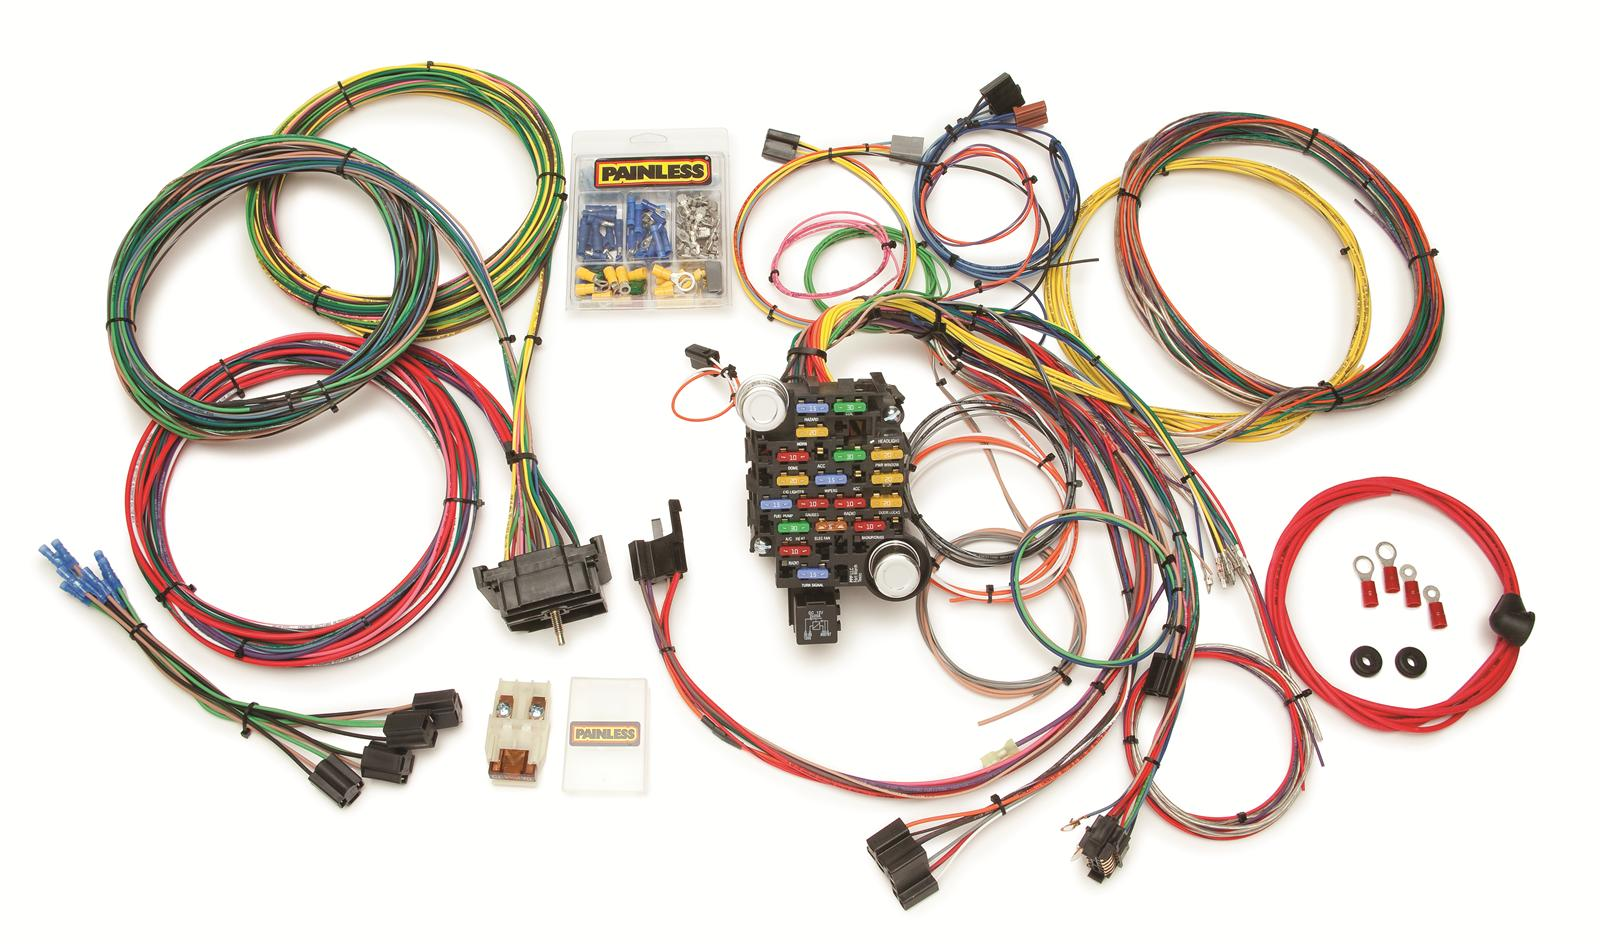 67 72 C10 Ls Swap Wiring Harness 32 Diagram Images 4l80e Prf 10206 Xl Painless Performance Chevy Gm Truck 28 Circuit Lsx